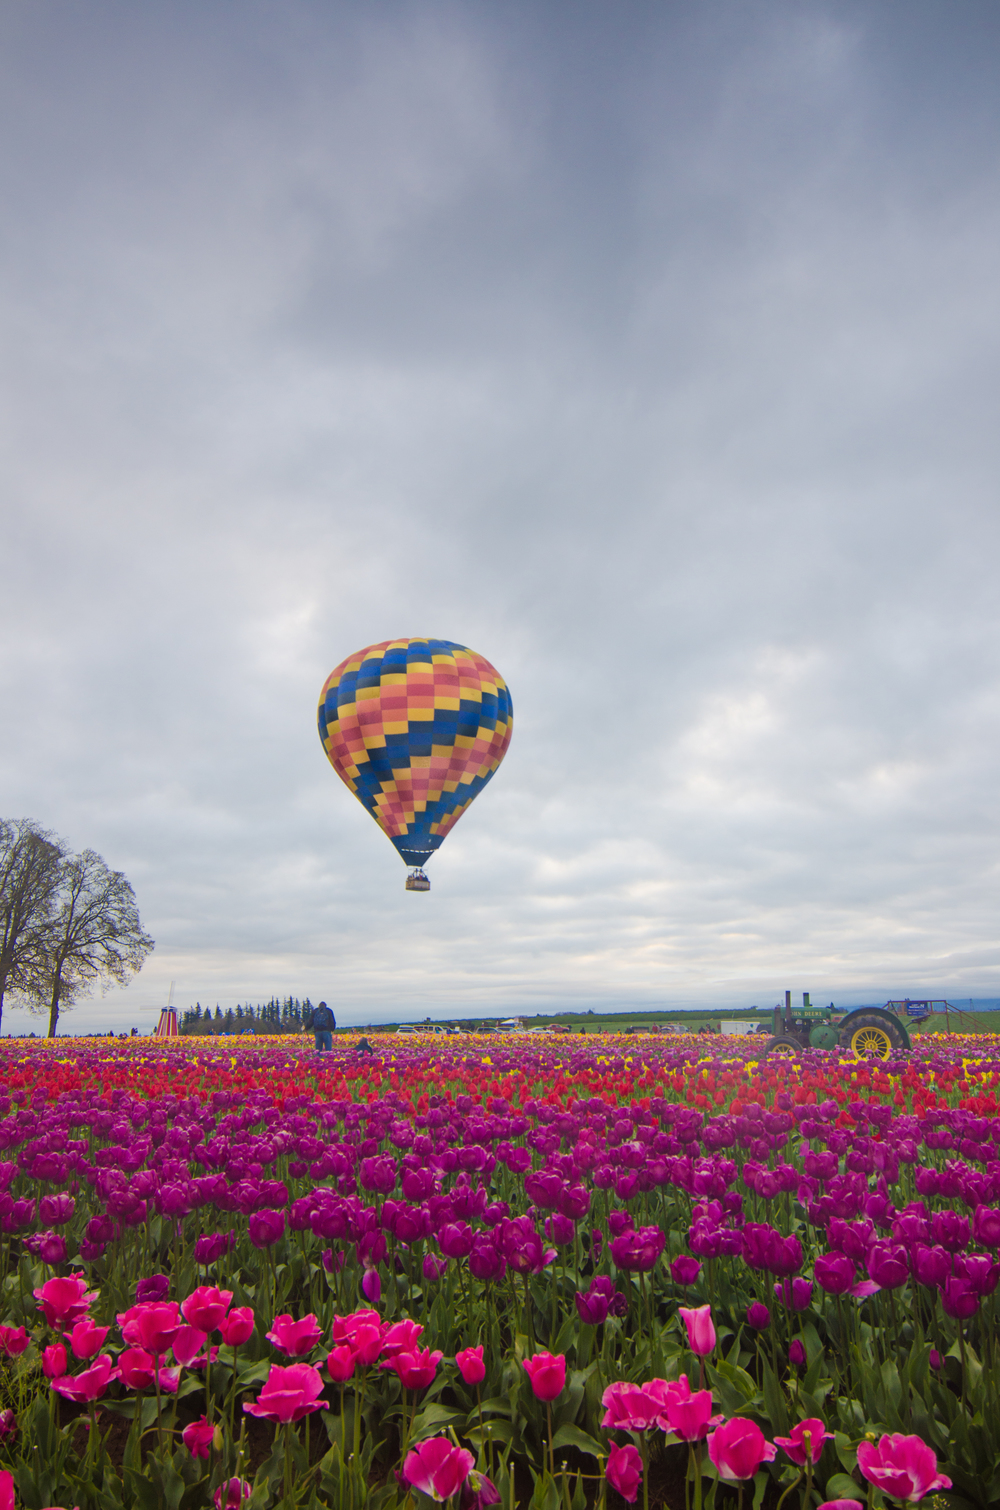 The first and only Hot Air Balloon that successfully launched from the tulip farm.